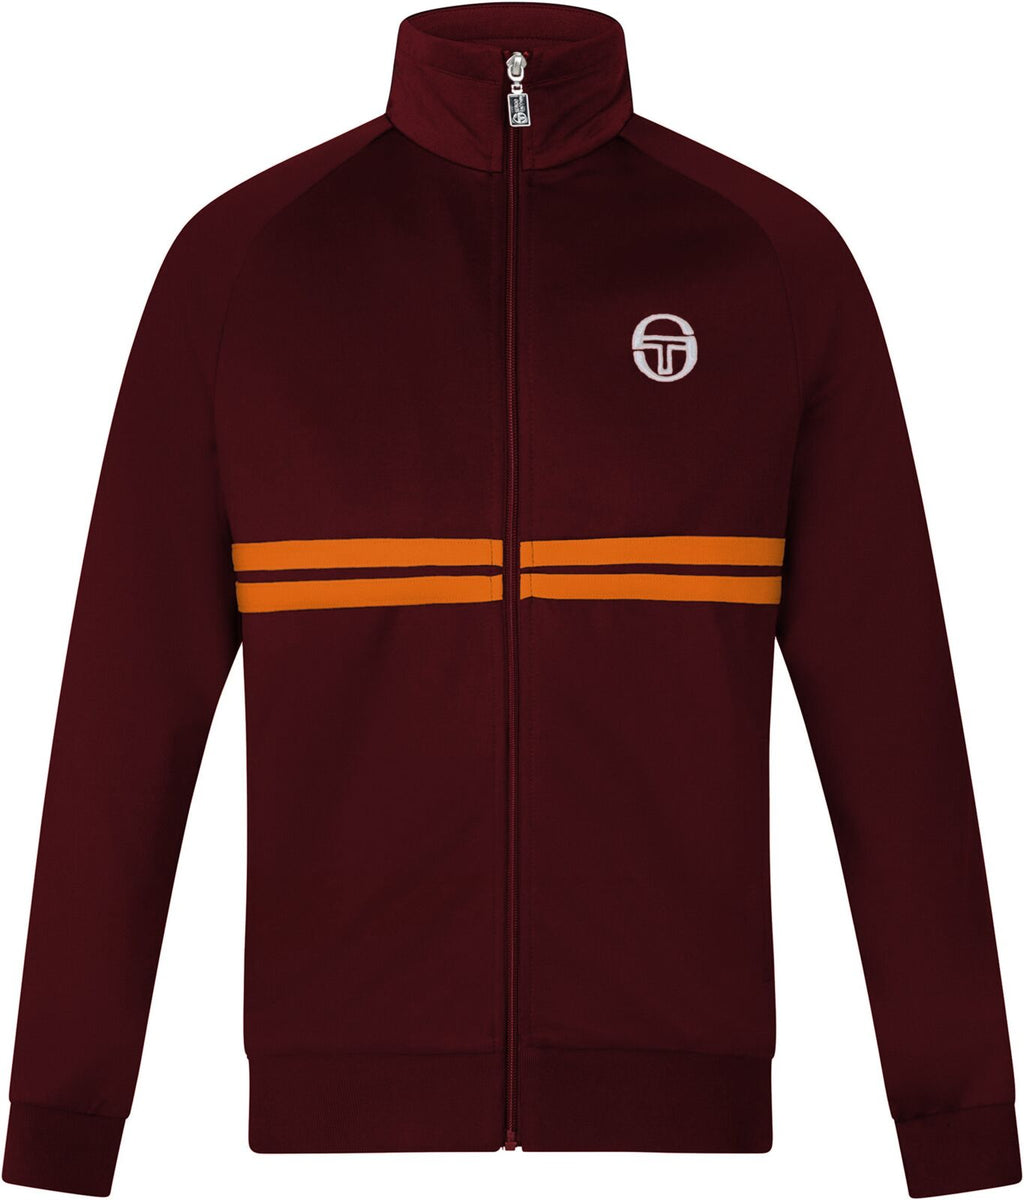 Sergio Tacchini Dallas Zip Front Track Top Burgundy